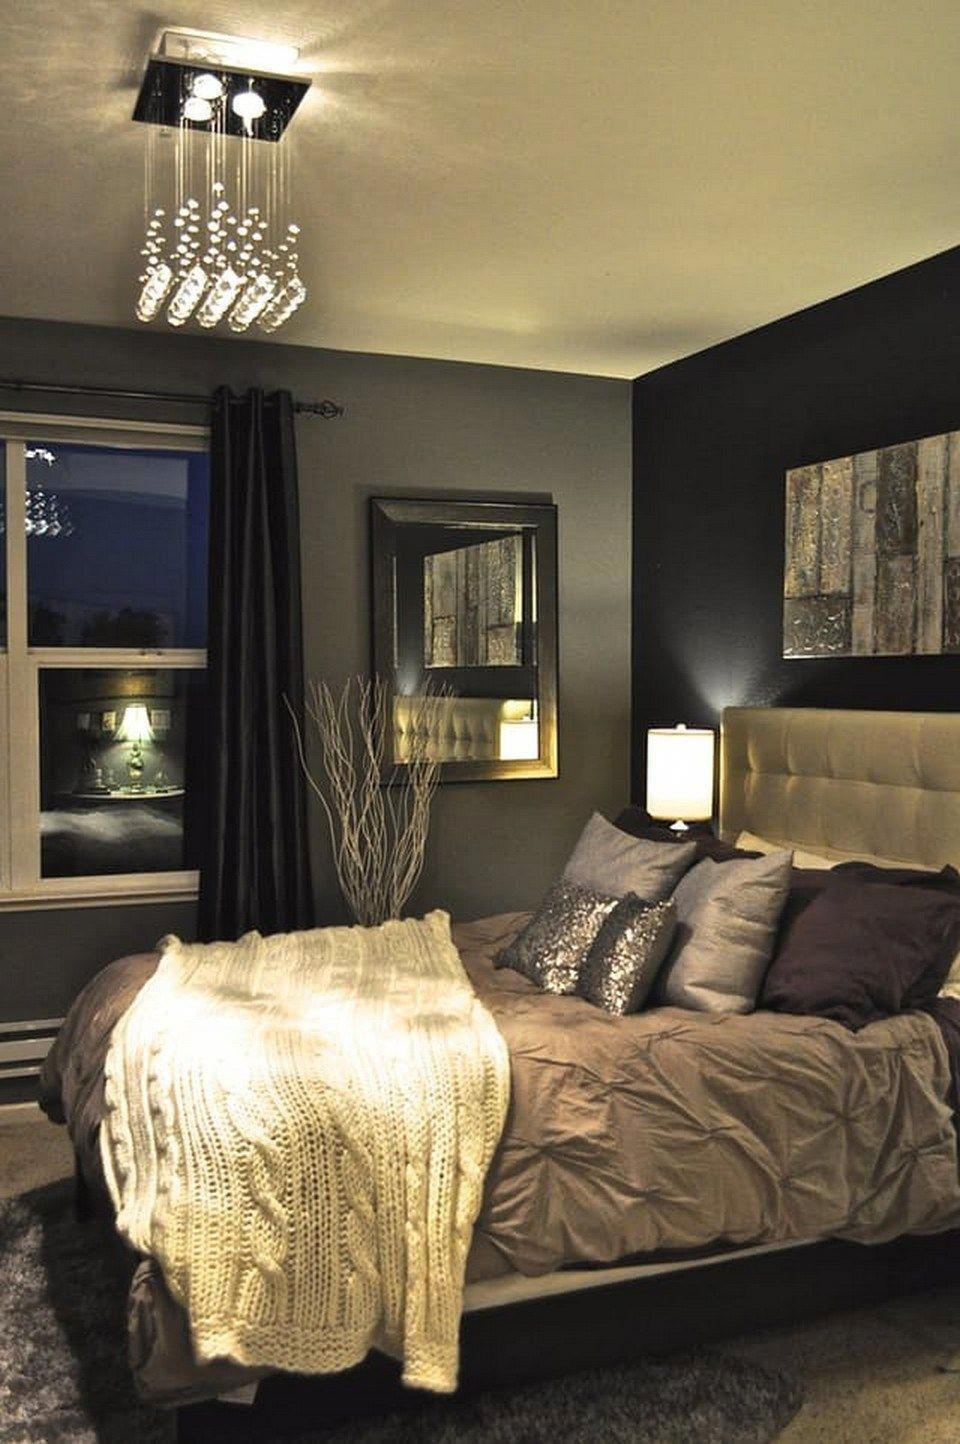 99 Most Beautiful Bedroom Decoration Ideas For Couples With Farmhouse Bedroom Style Homedecorbedroom Bedroom Design Master Bedrooms Decor Apartment Decor Most beautiful bedroom designs